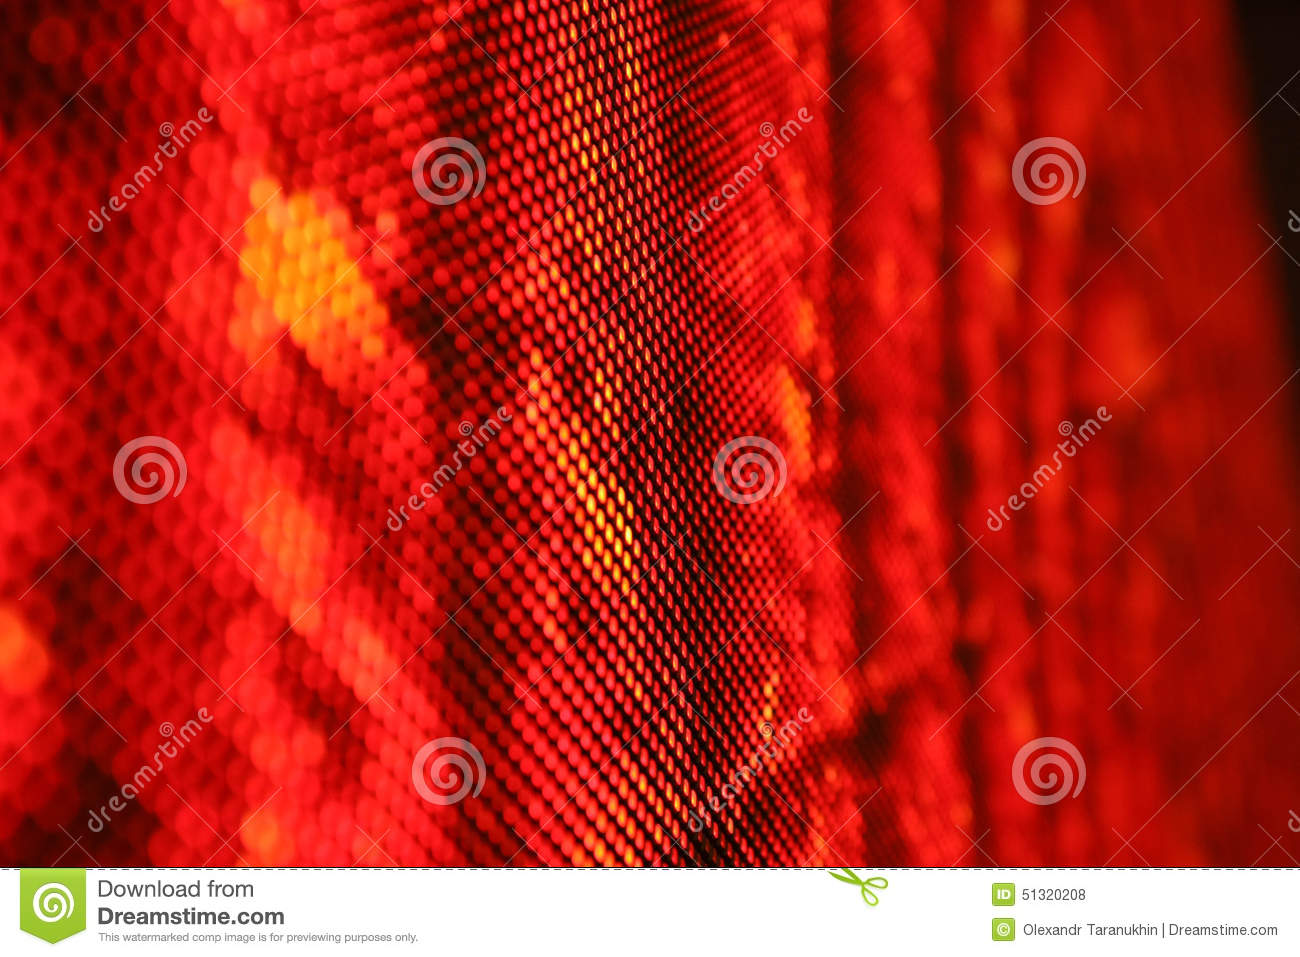 Led Screen SMD Red Close Up Stock Photo - Image: 51320208 for Red Led Light Texture  104xkb